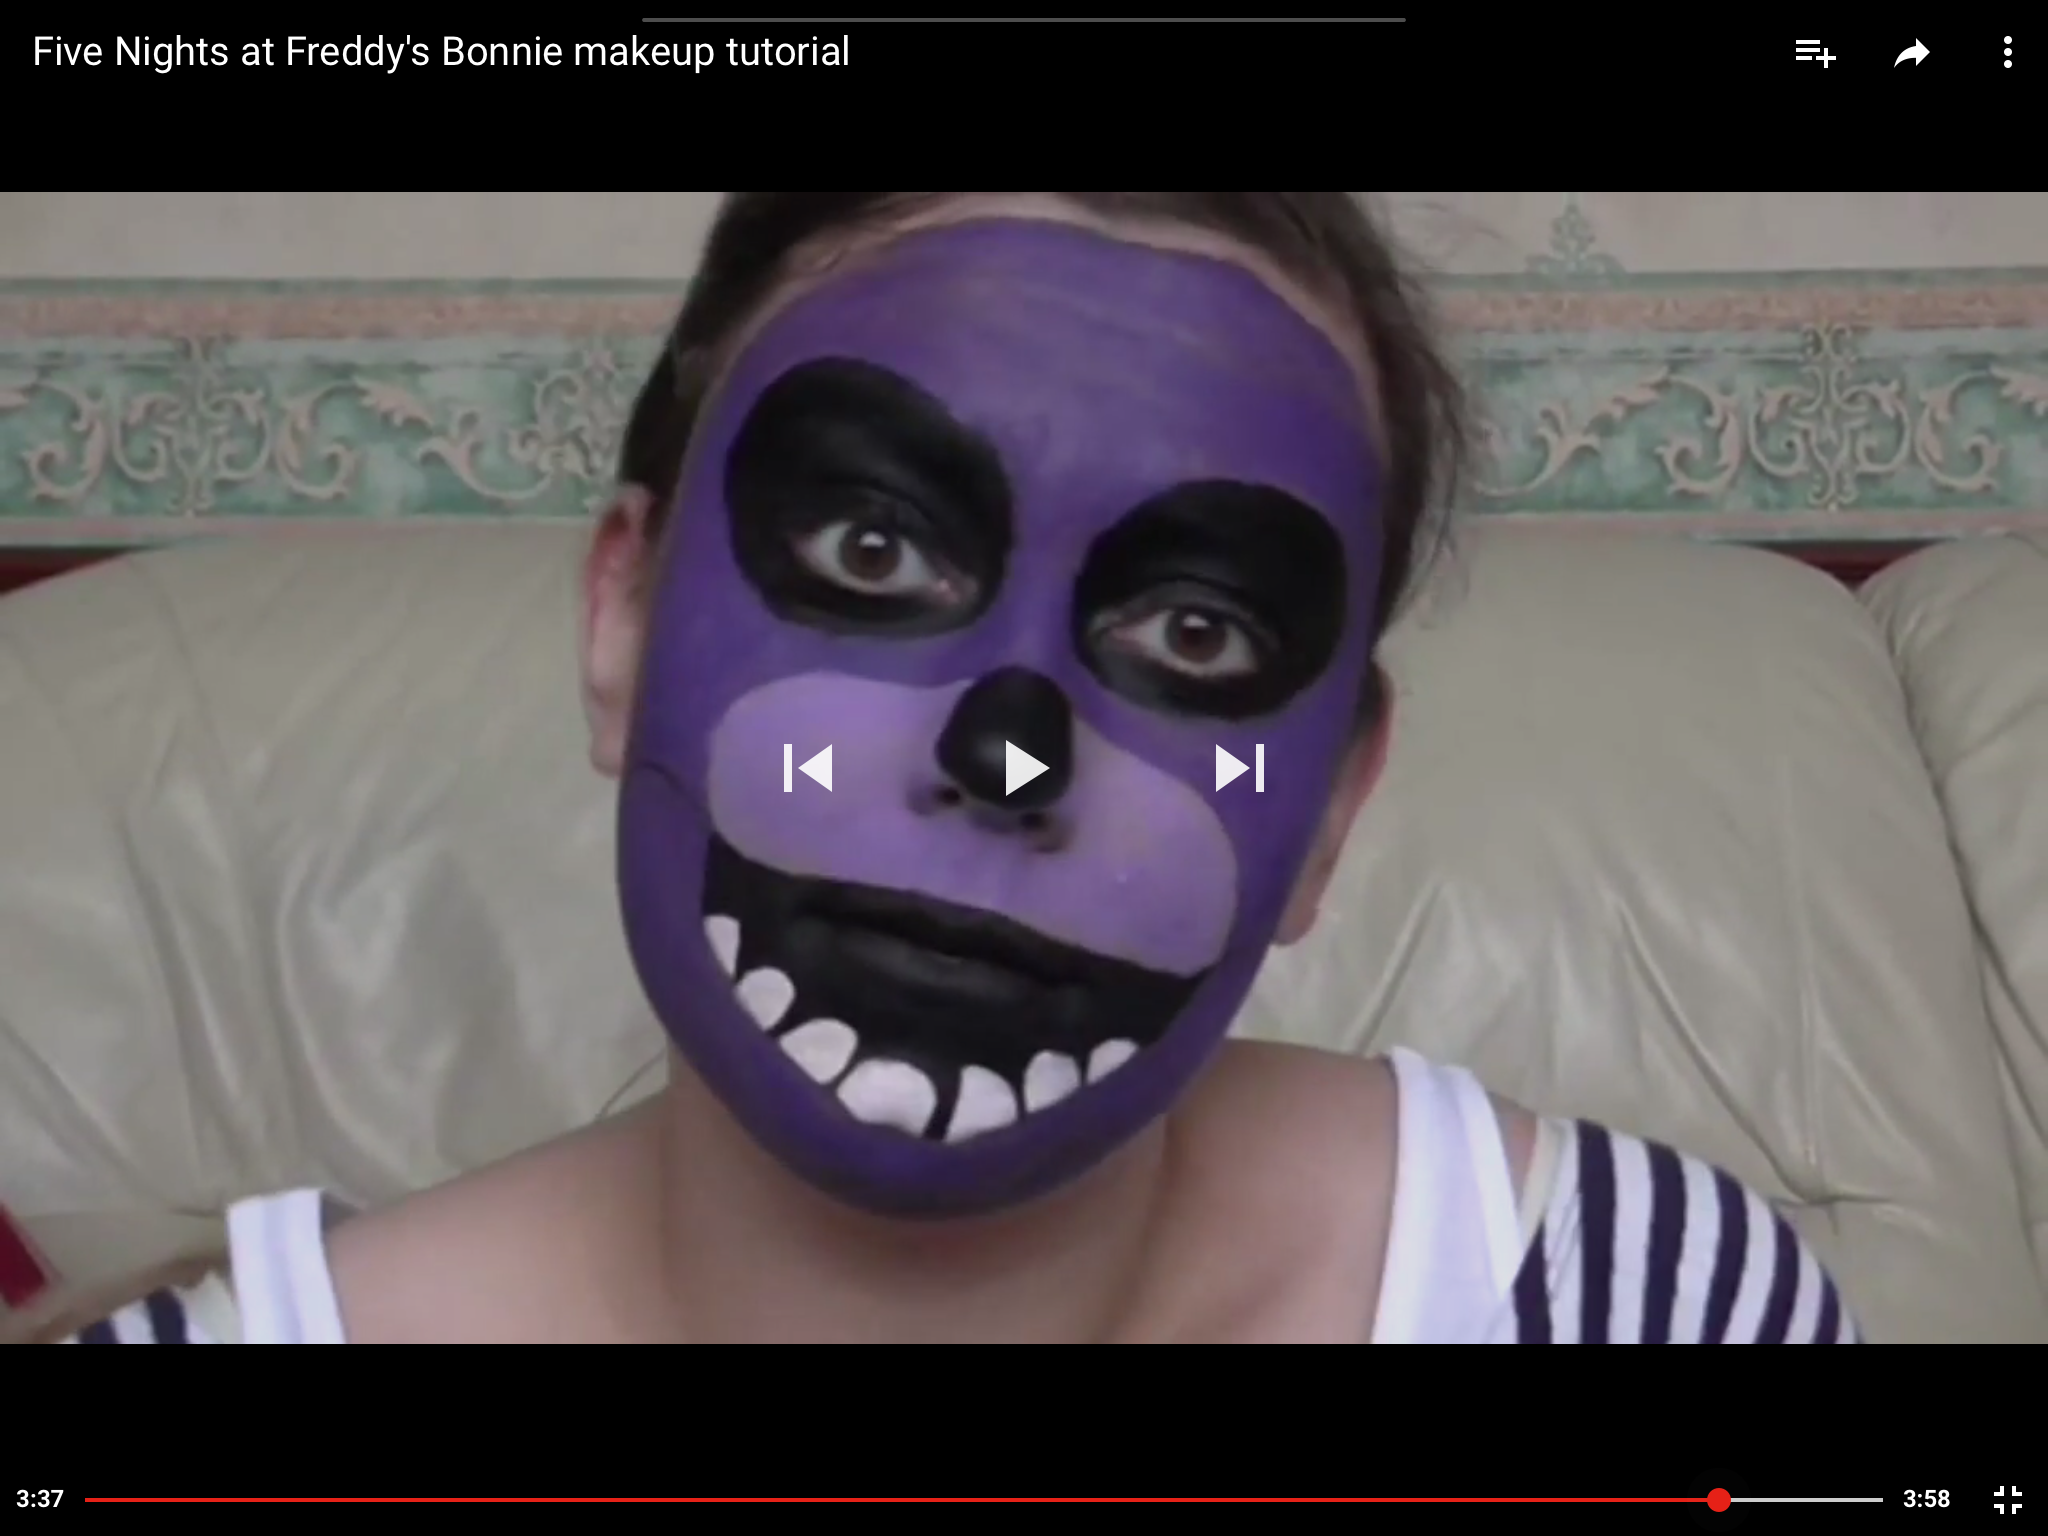 Fnaf bonnie costume for sale - Five Nights At Freddy S Bonnie Makeup Tutorial Youtube Https Www Youtube